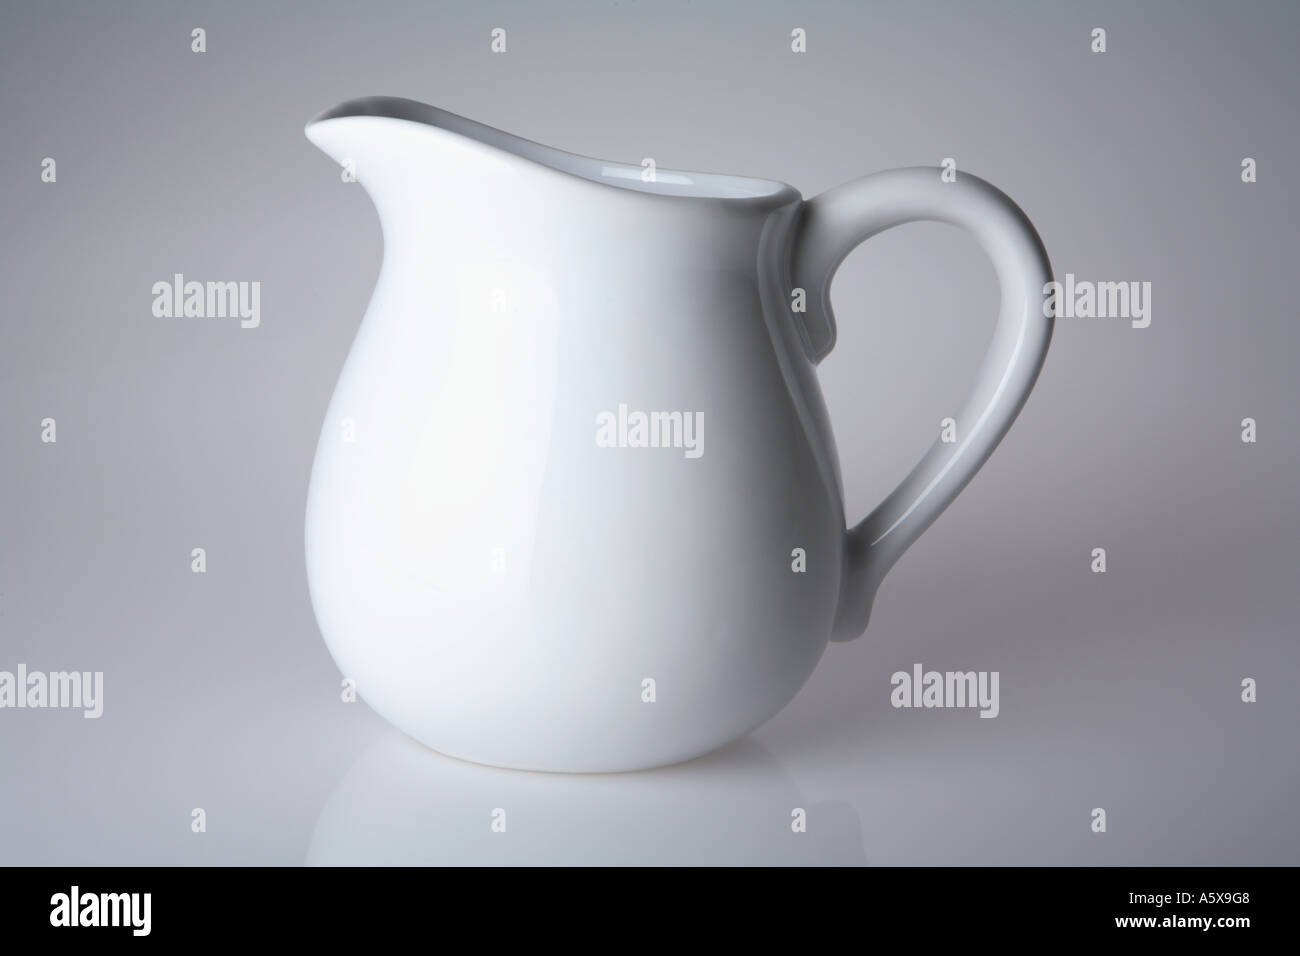 Porcelain Cream Pitcher - Stock Image